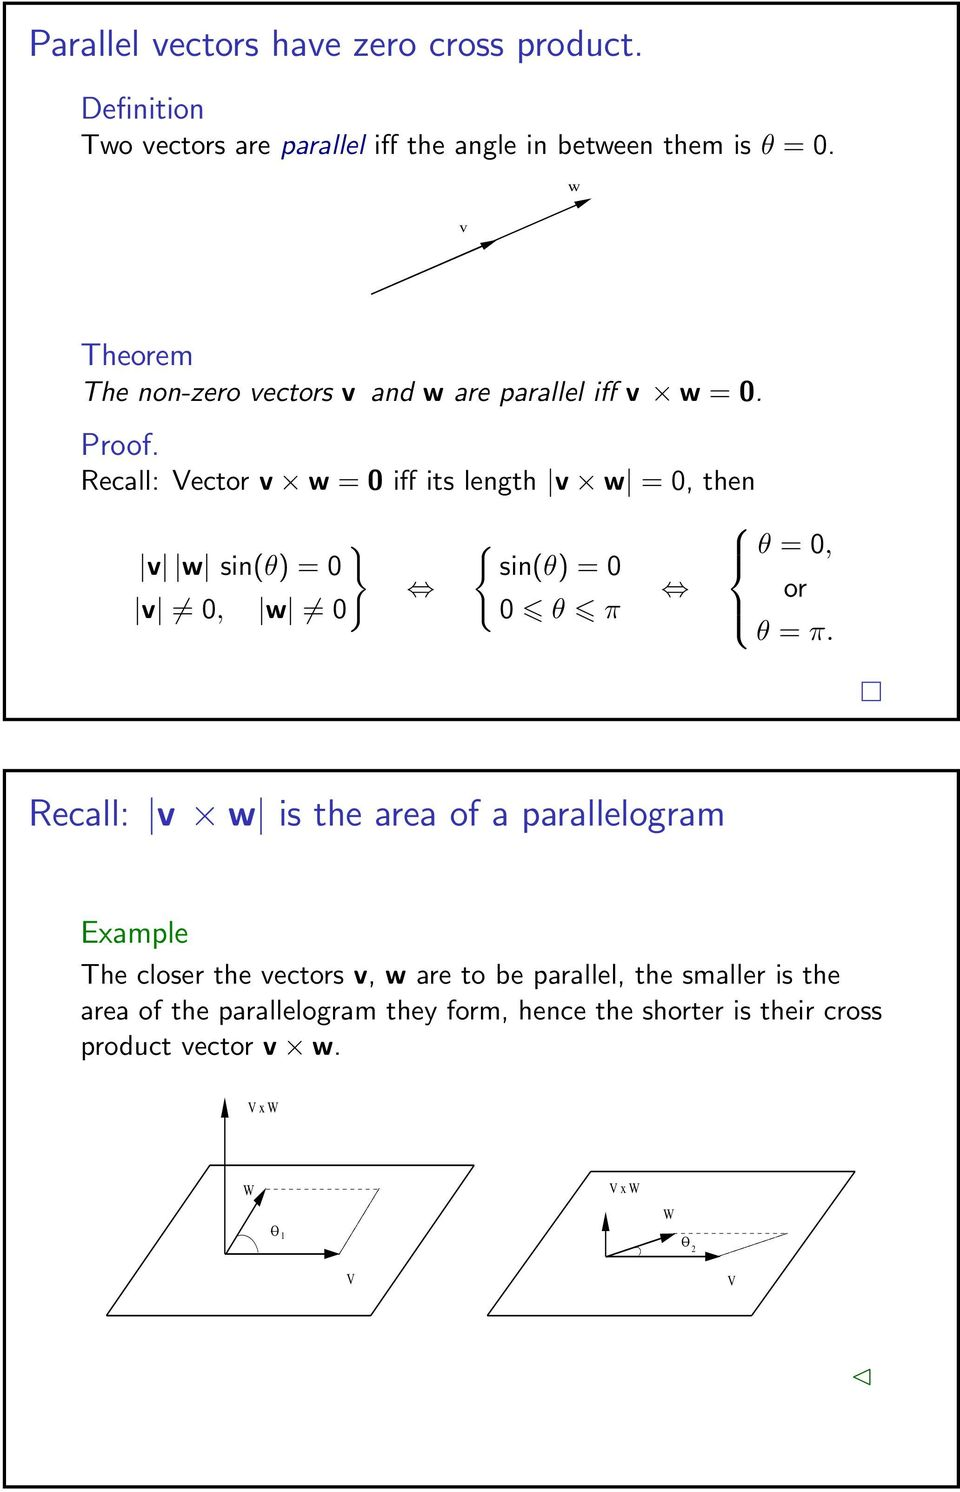 Recall: v w is the area of a parallelogram Example The closer the vectors v, w are to be parallel, the smaller is the area of the parallelogram they form, hence the shorter is their cross